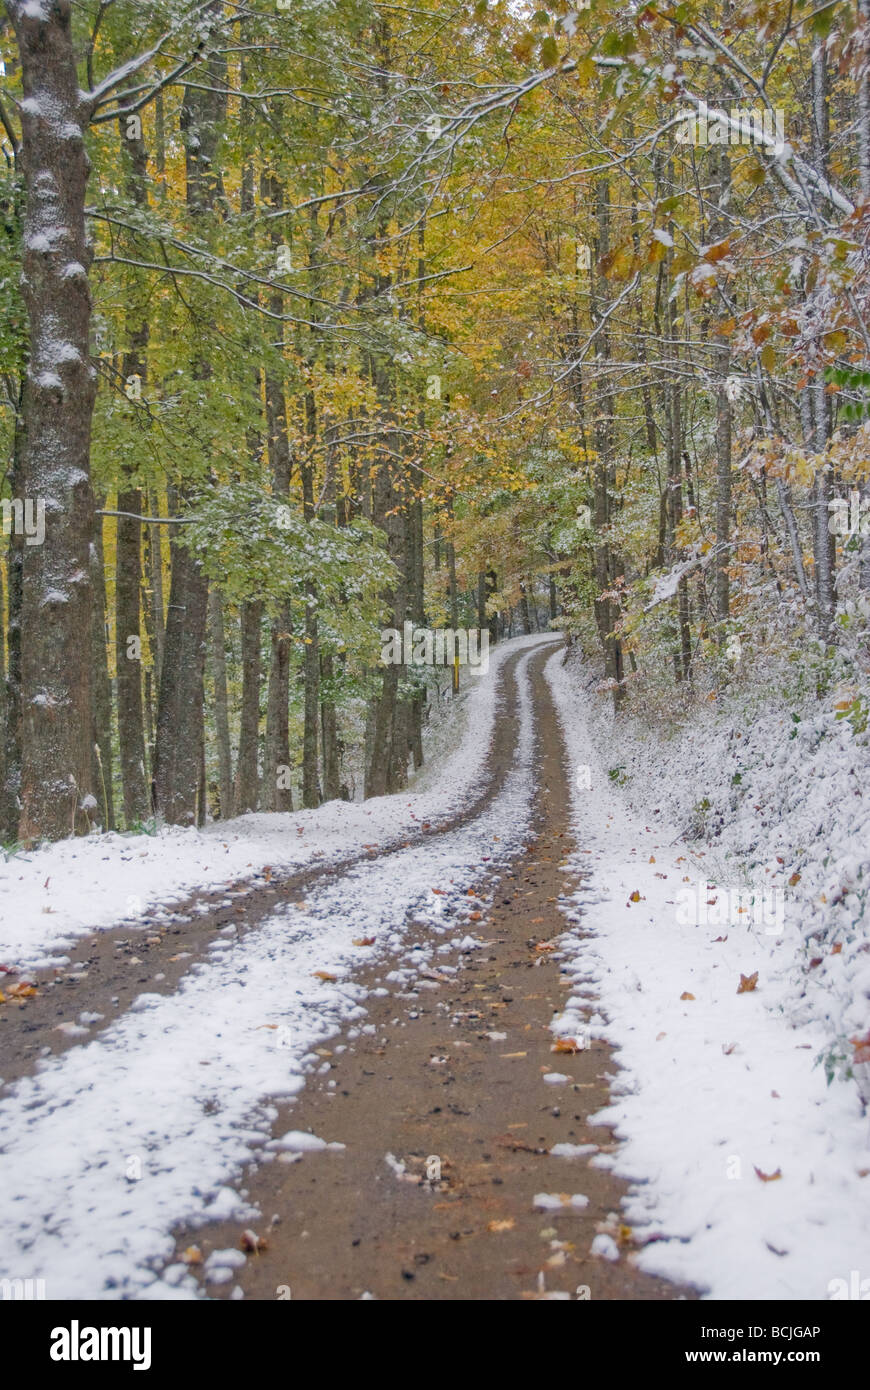 Snow Covered Mountain Road In The Fall Of The Year With